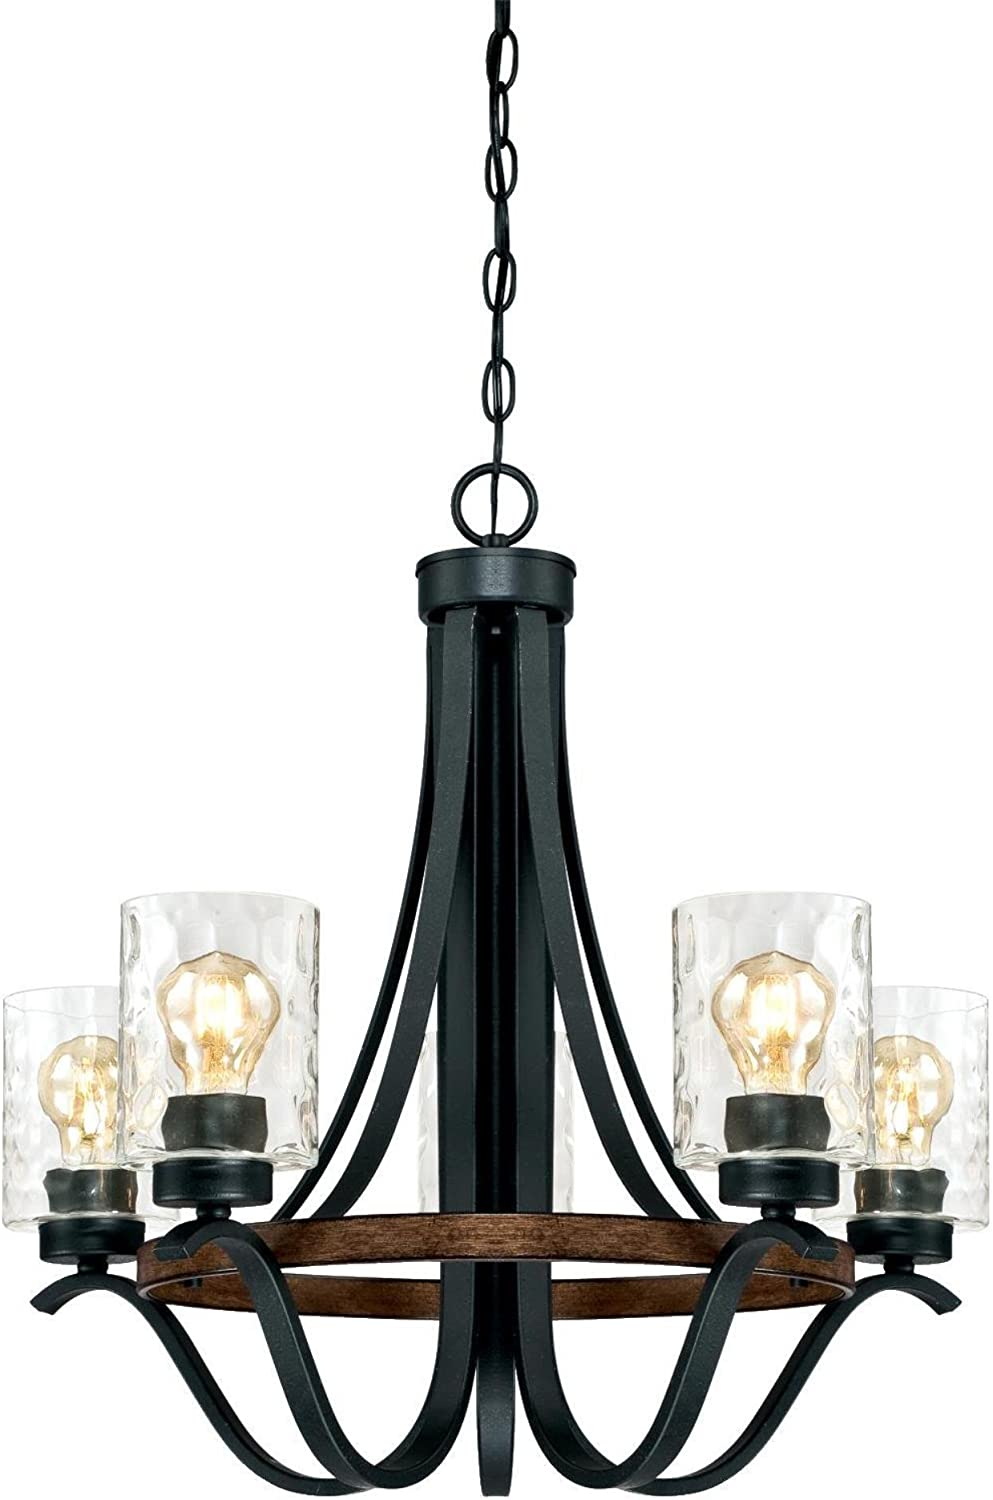 Westinghouse Lighting 6331900 Barnwell Five-Light Indoor Chandelier, Textured Iron and Barnwood Finish with Clear Hammered Glass, 5, Iron Barnwood